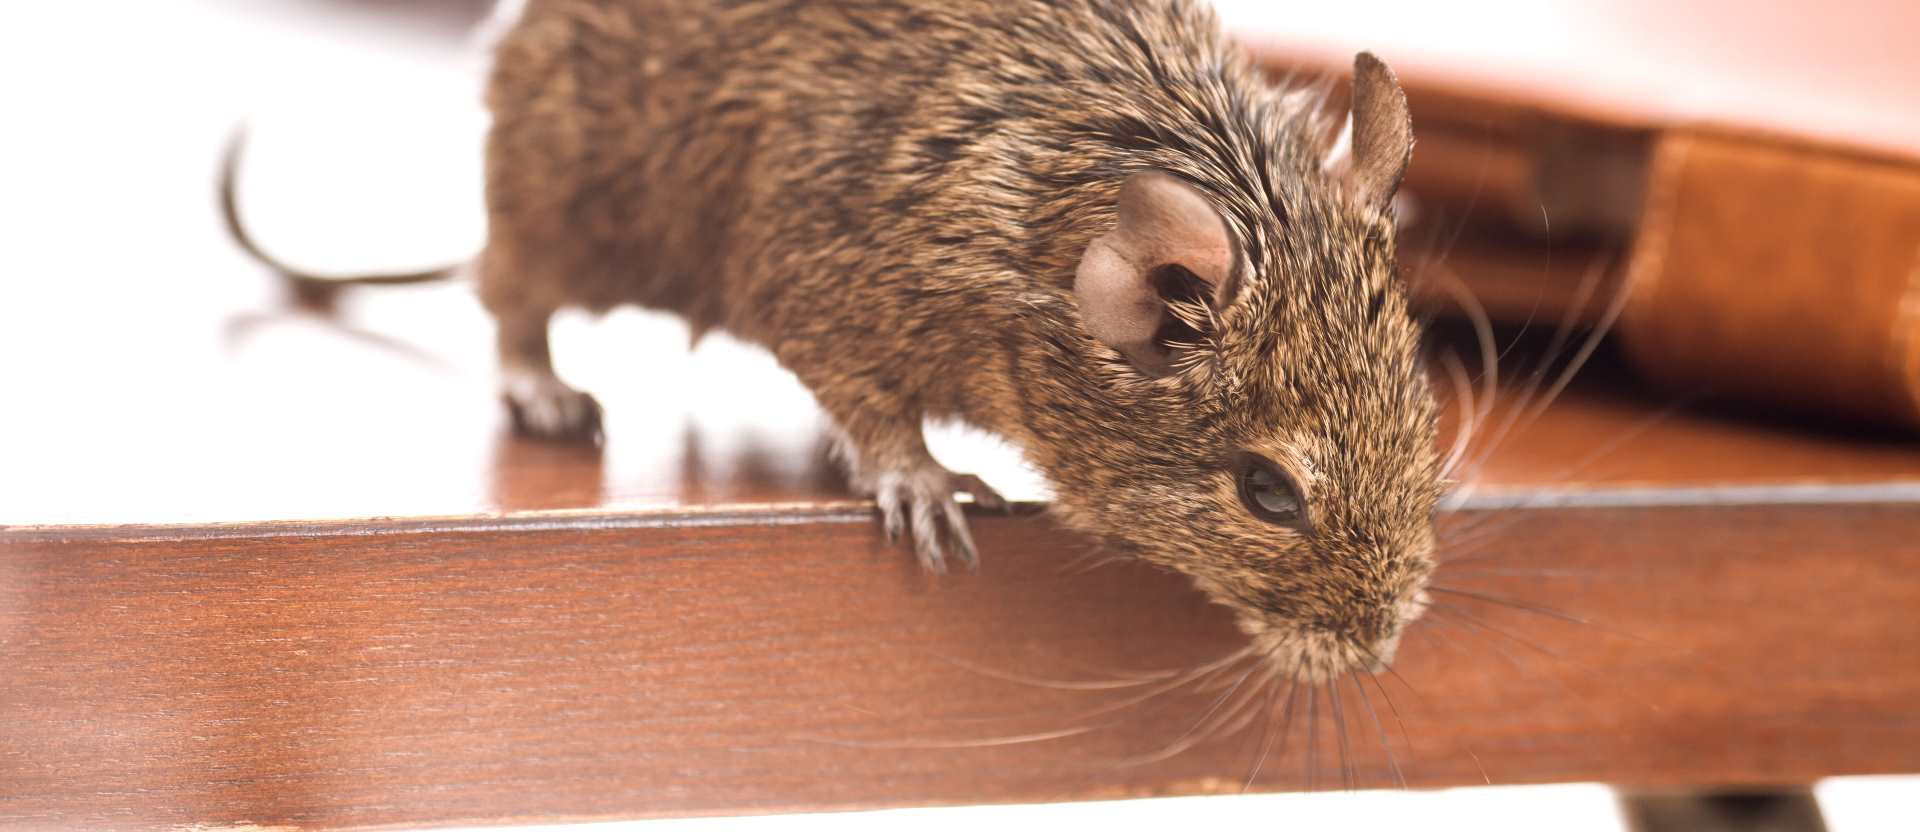 Rodent Pest Control in Boston